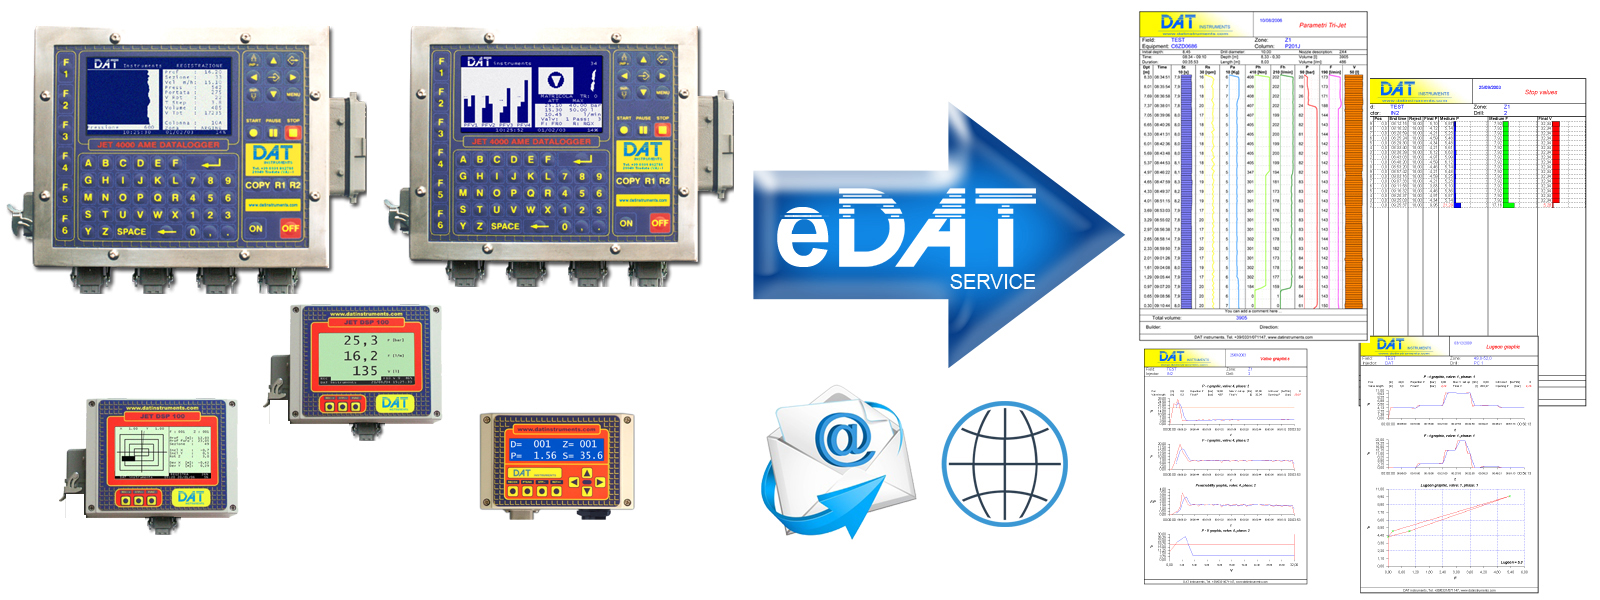 DAT instruments, EDAT, data elaboration service